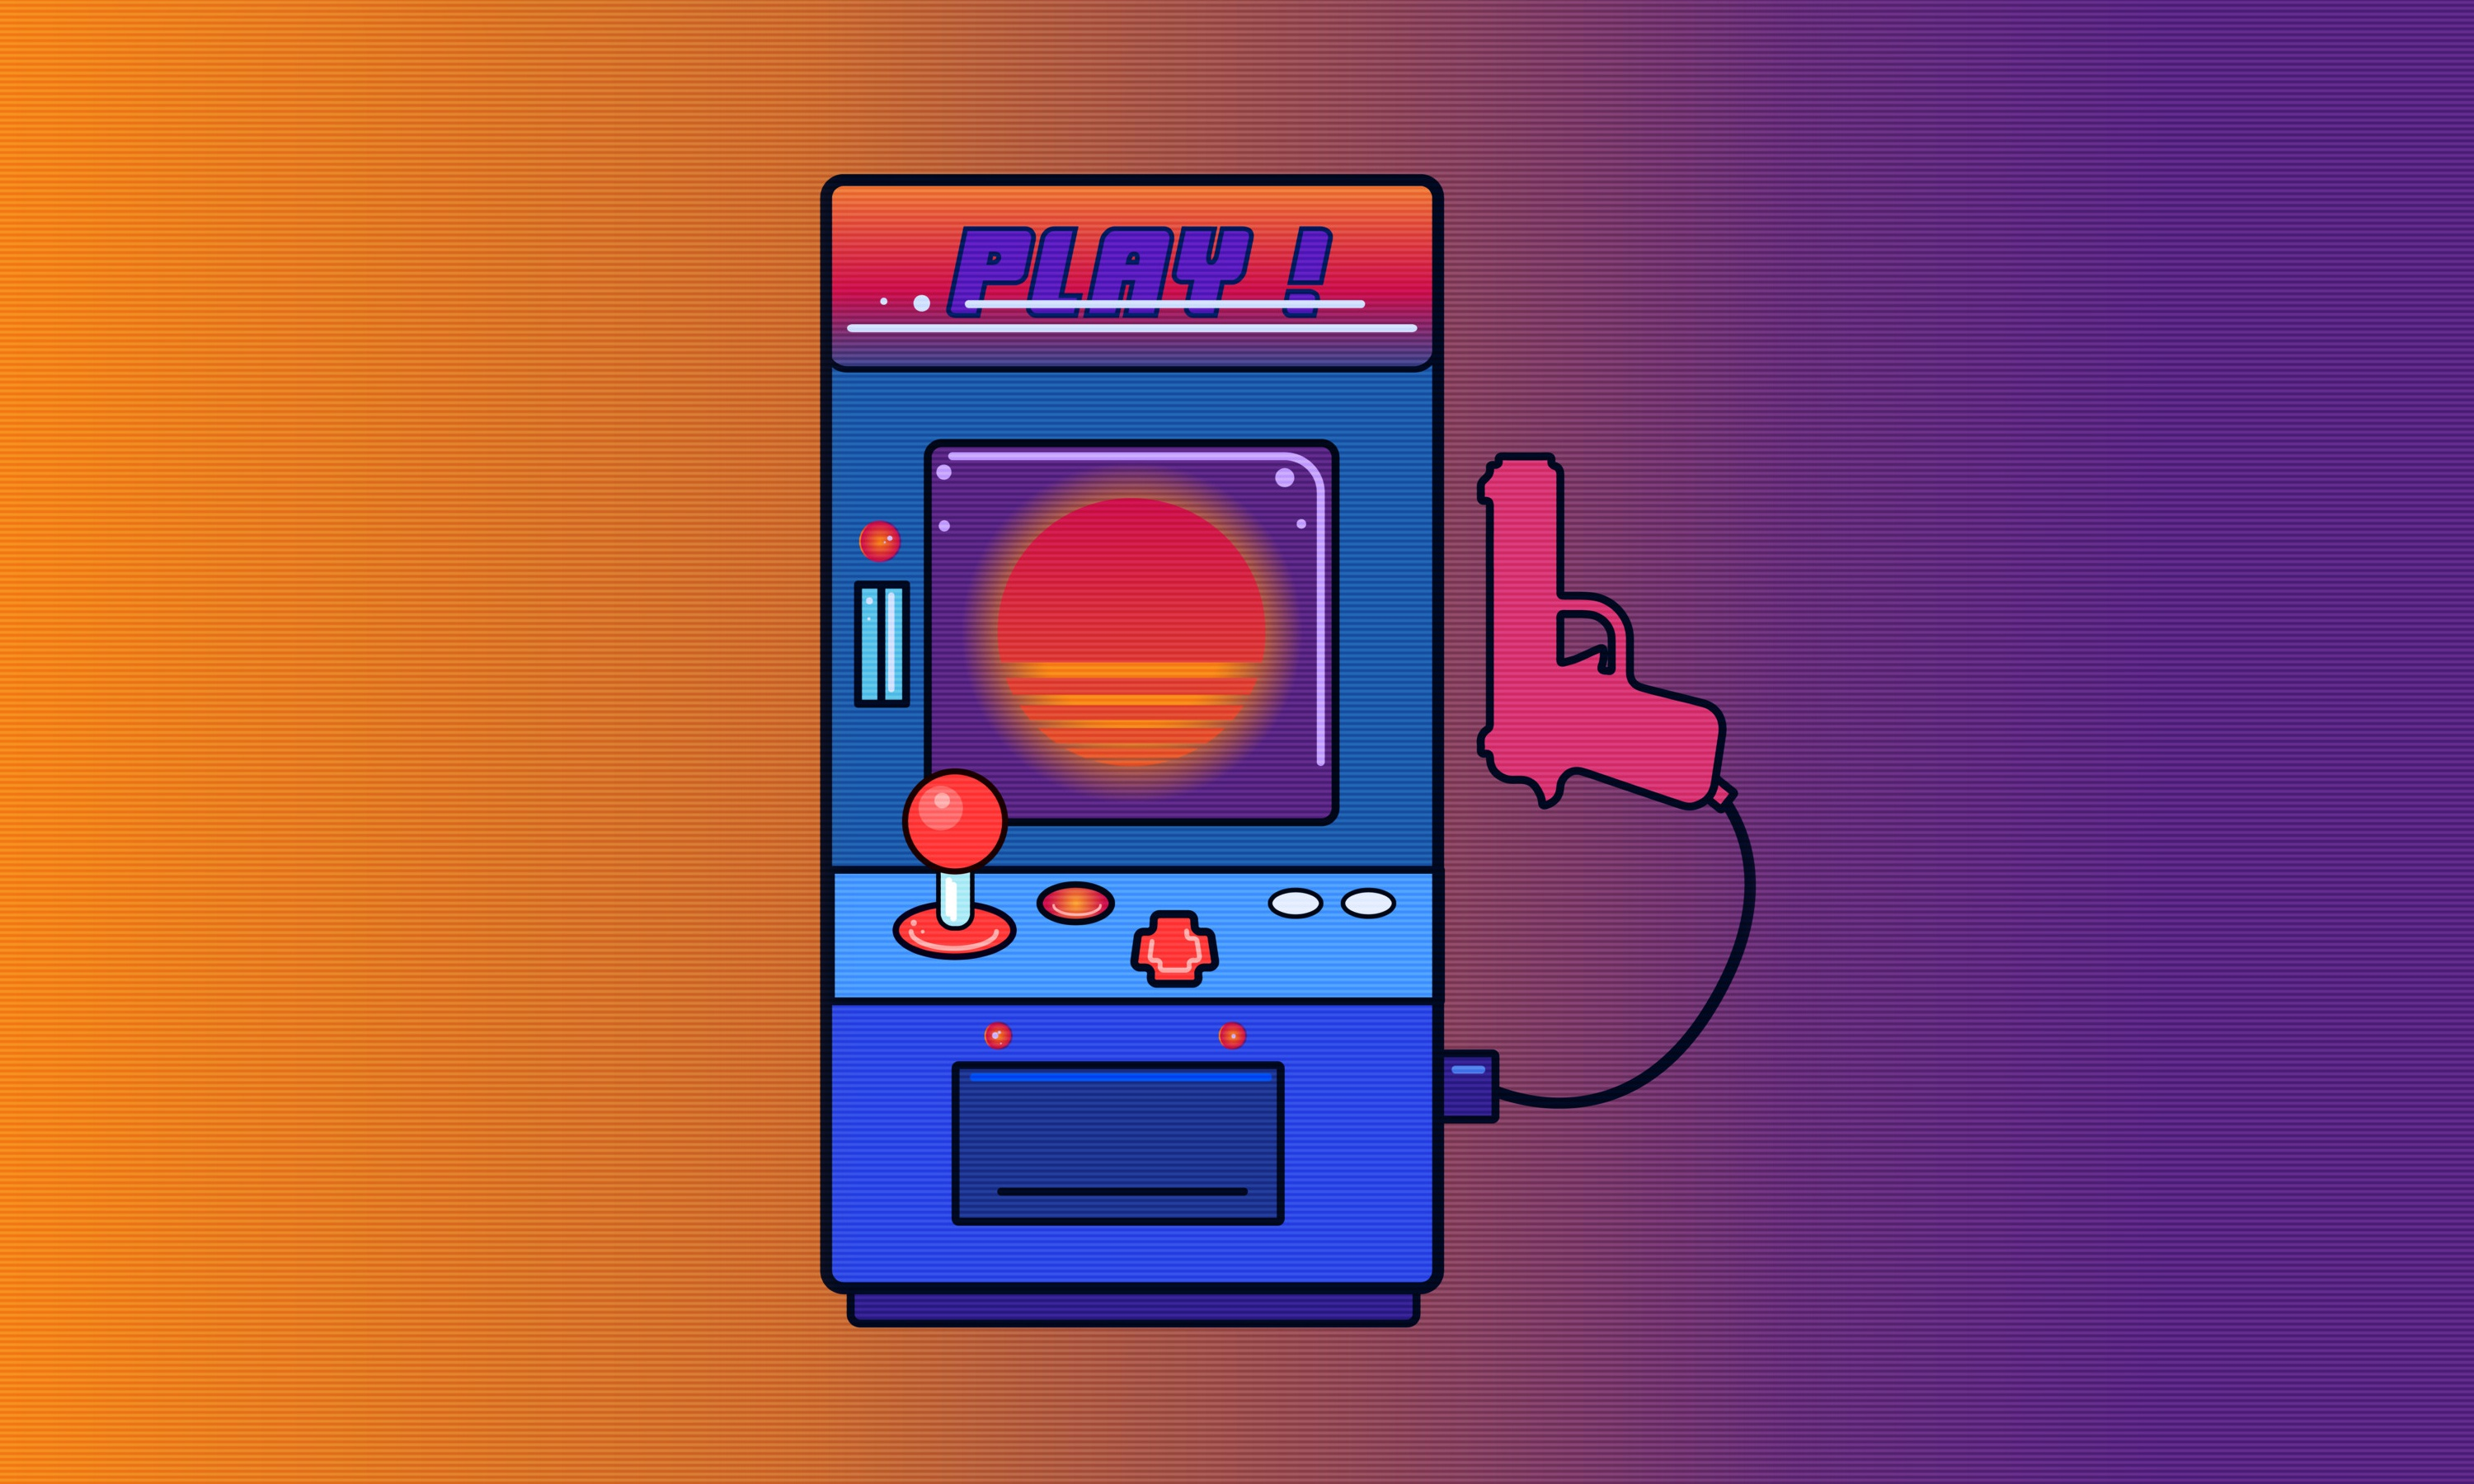 2048x1152 Arcade Games Retro Wave 2048x1152 Resolution Hd 4k Wallpapers Images Backgrounds Photos And Pictures